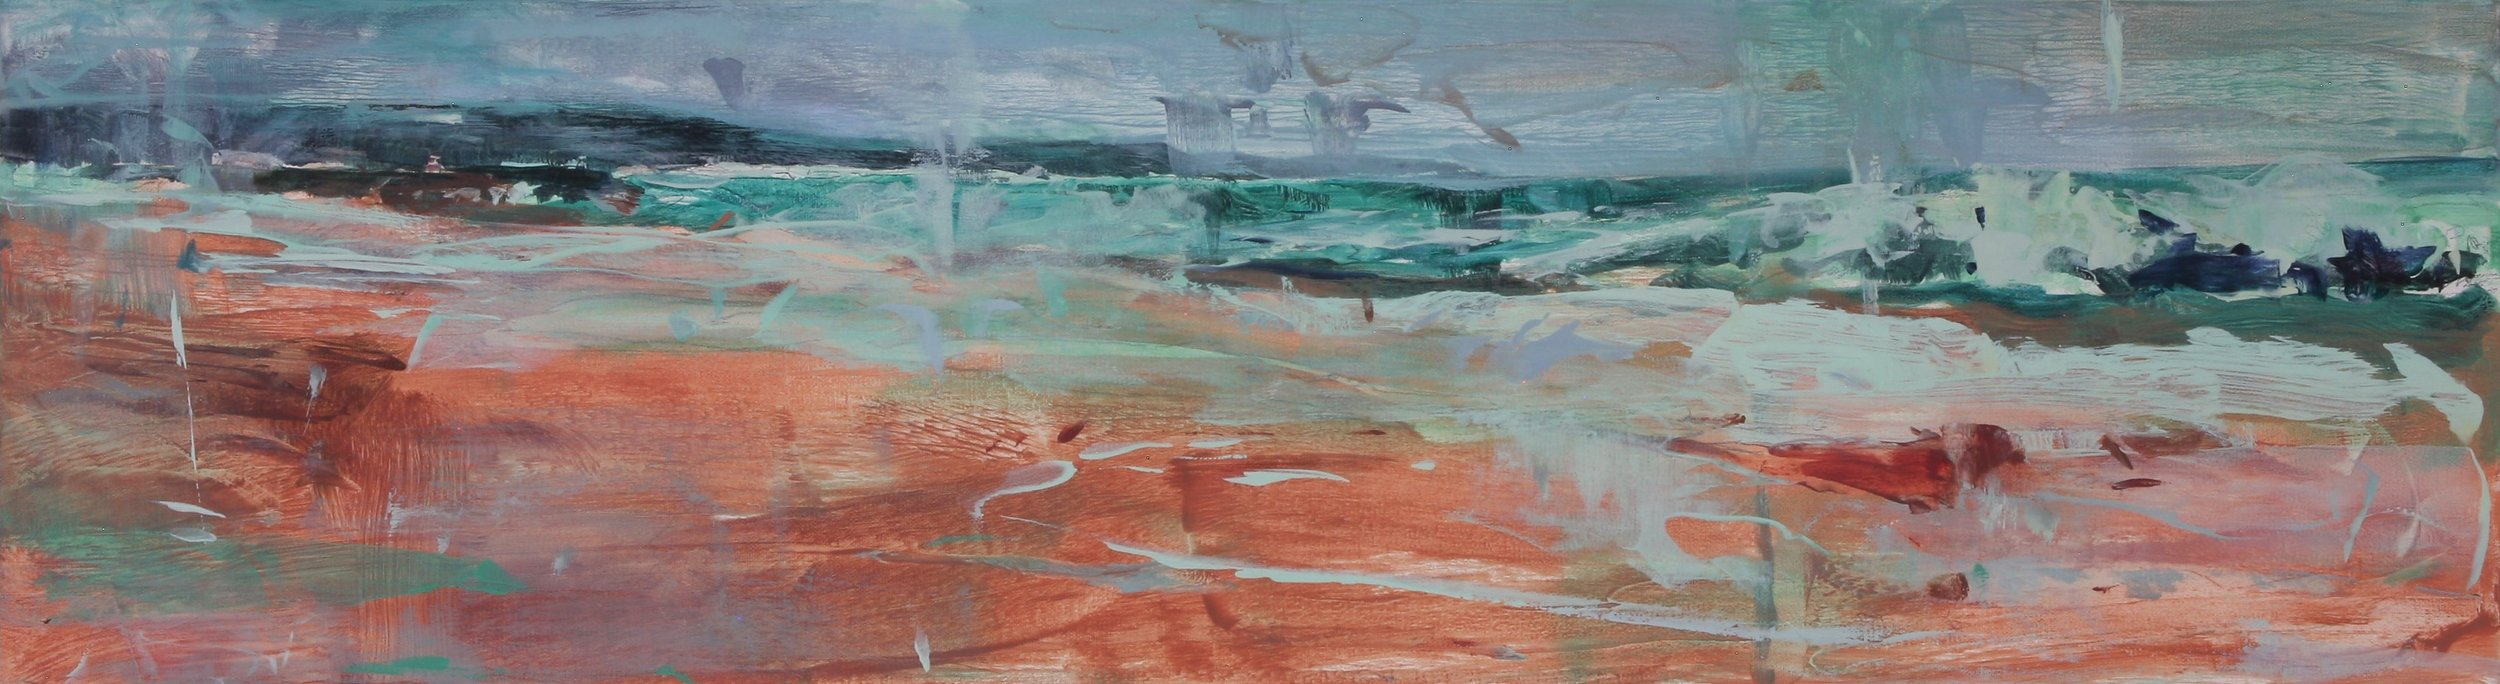 A Distant Wave I 2018 10'' x 36'' oil on canvas